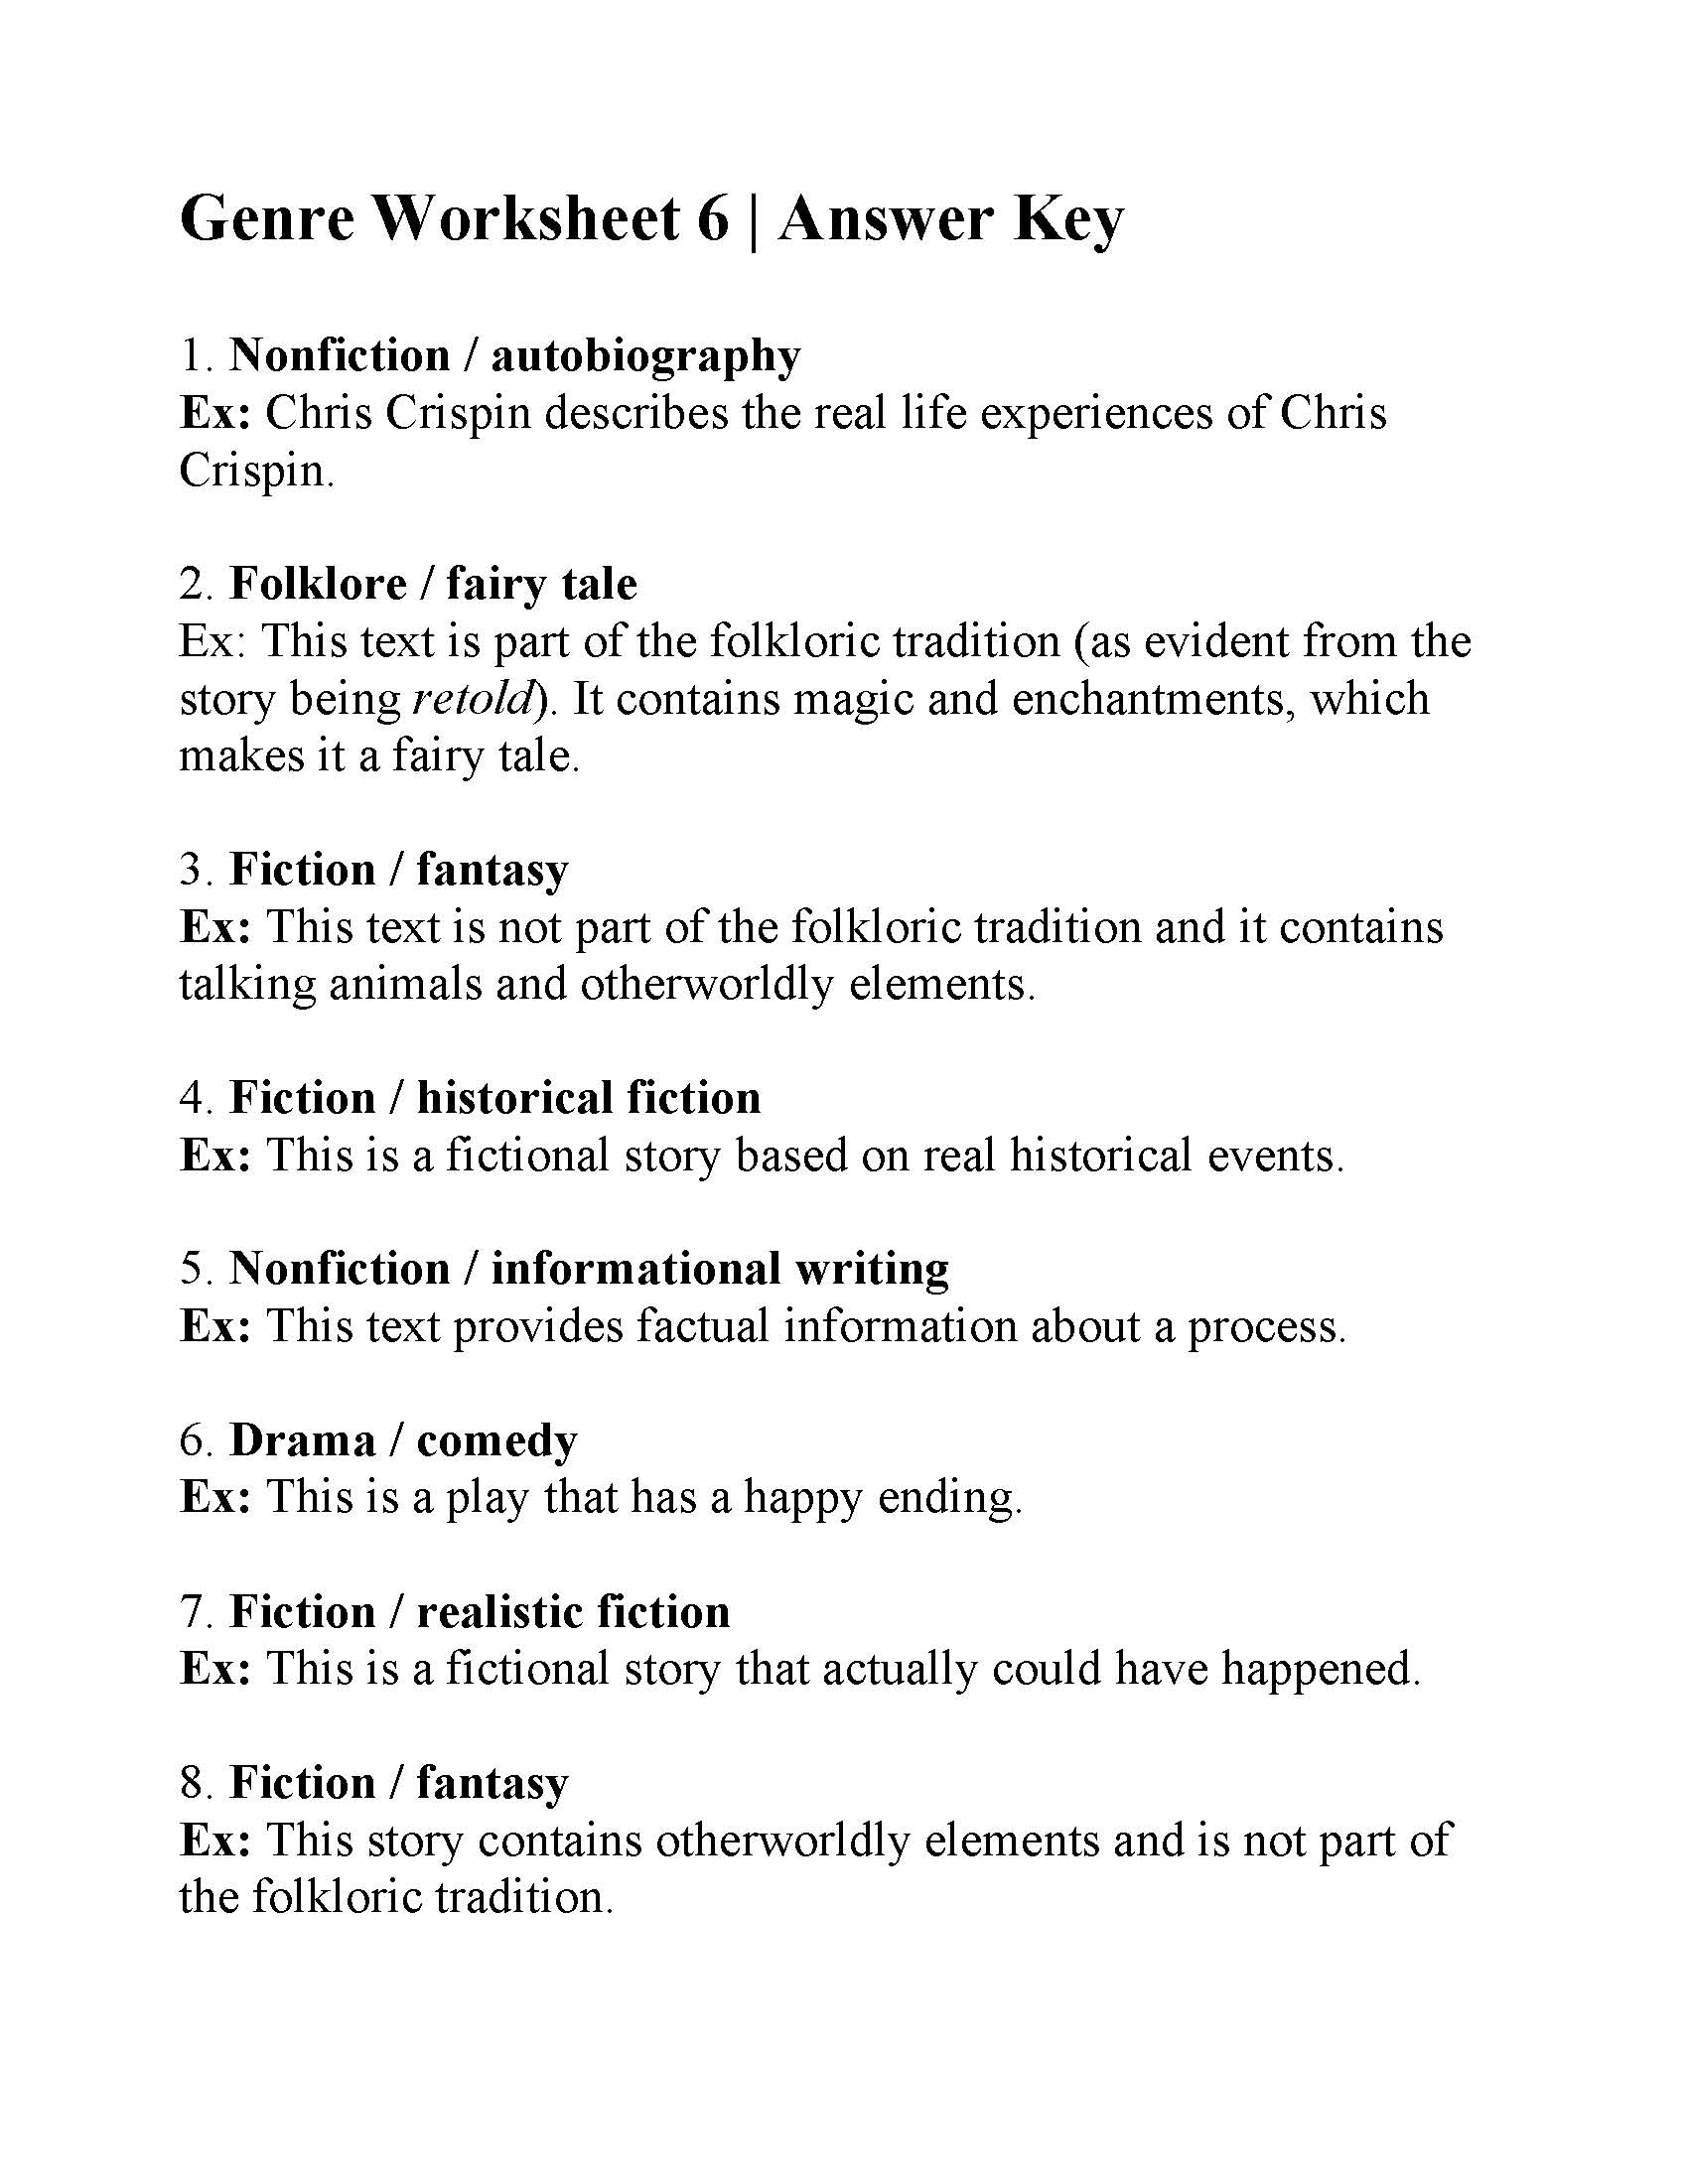 Genre Worksheet 6